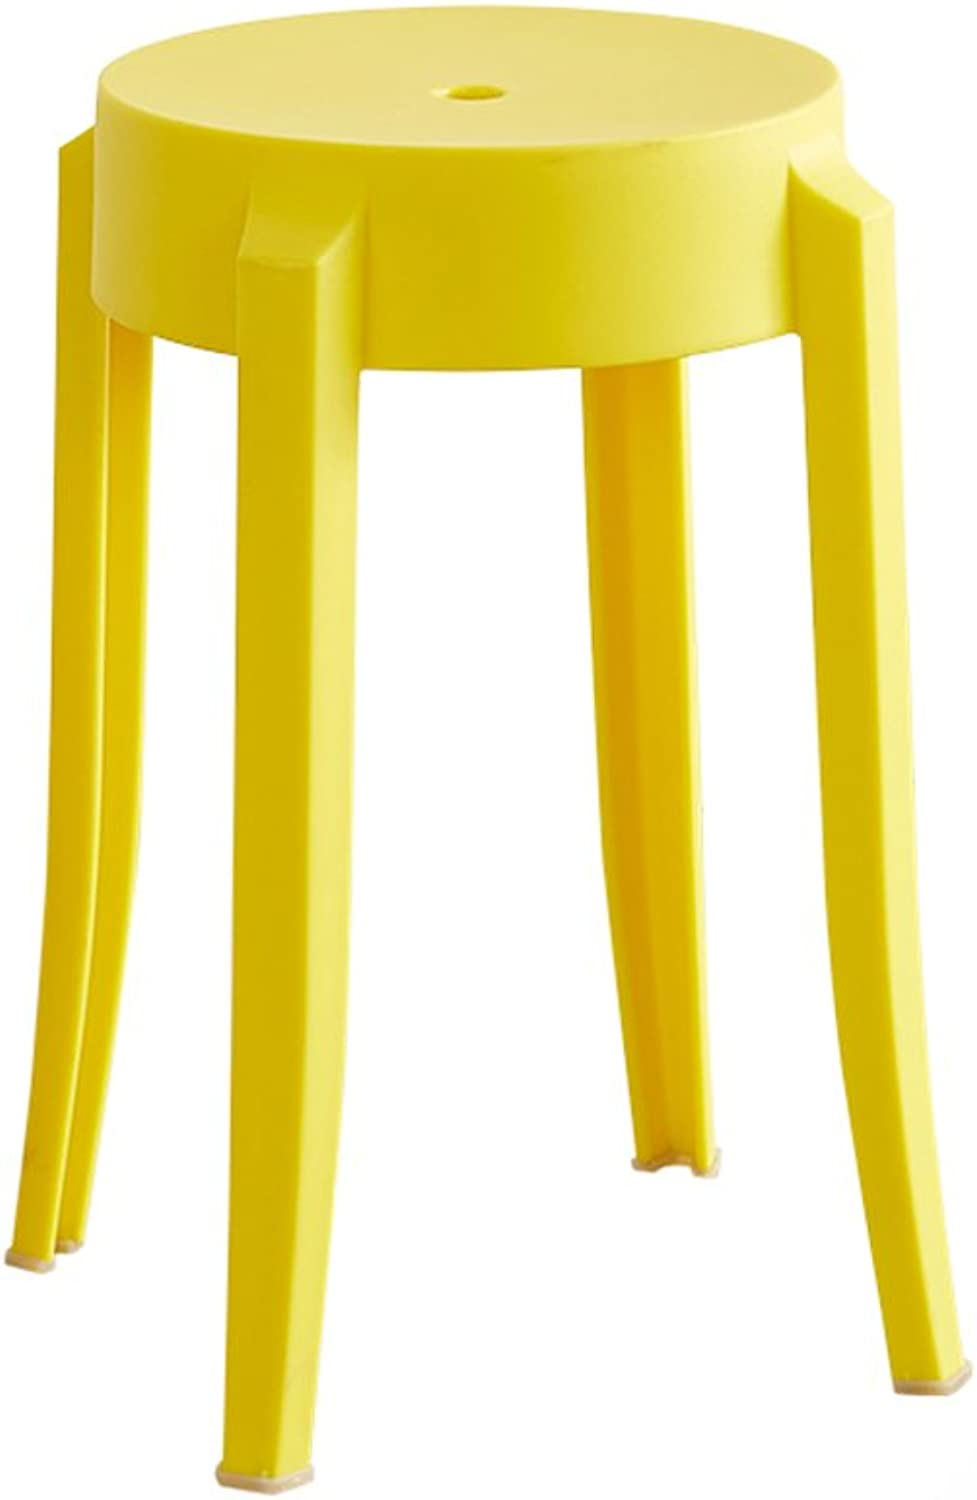 European Chair Household Plastic Chair, Thick Small Bench Restaurant Simple Dining Table Stool